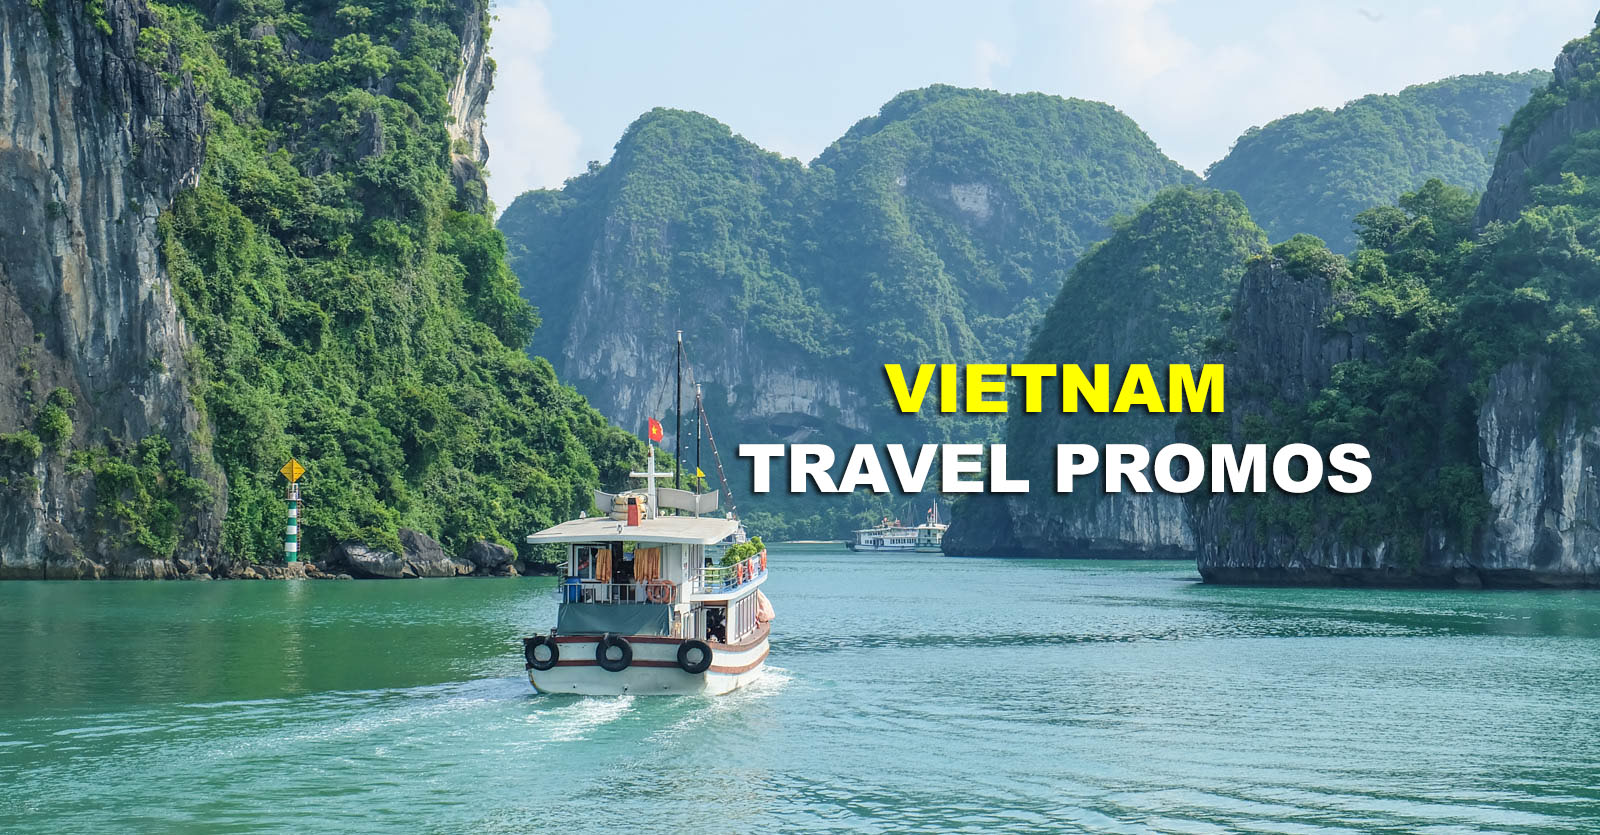 Vietnam Travel Promos: Bamboo Airways' Wednesday Sellout